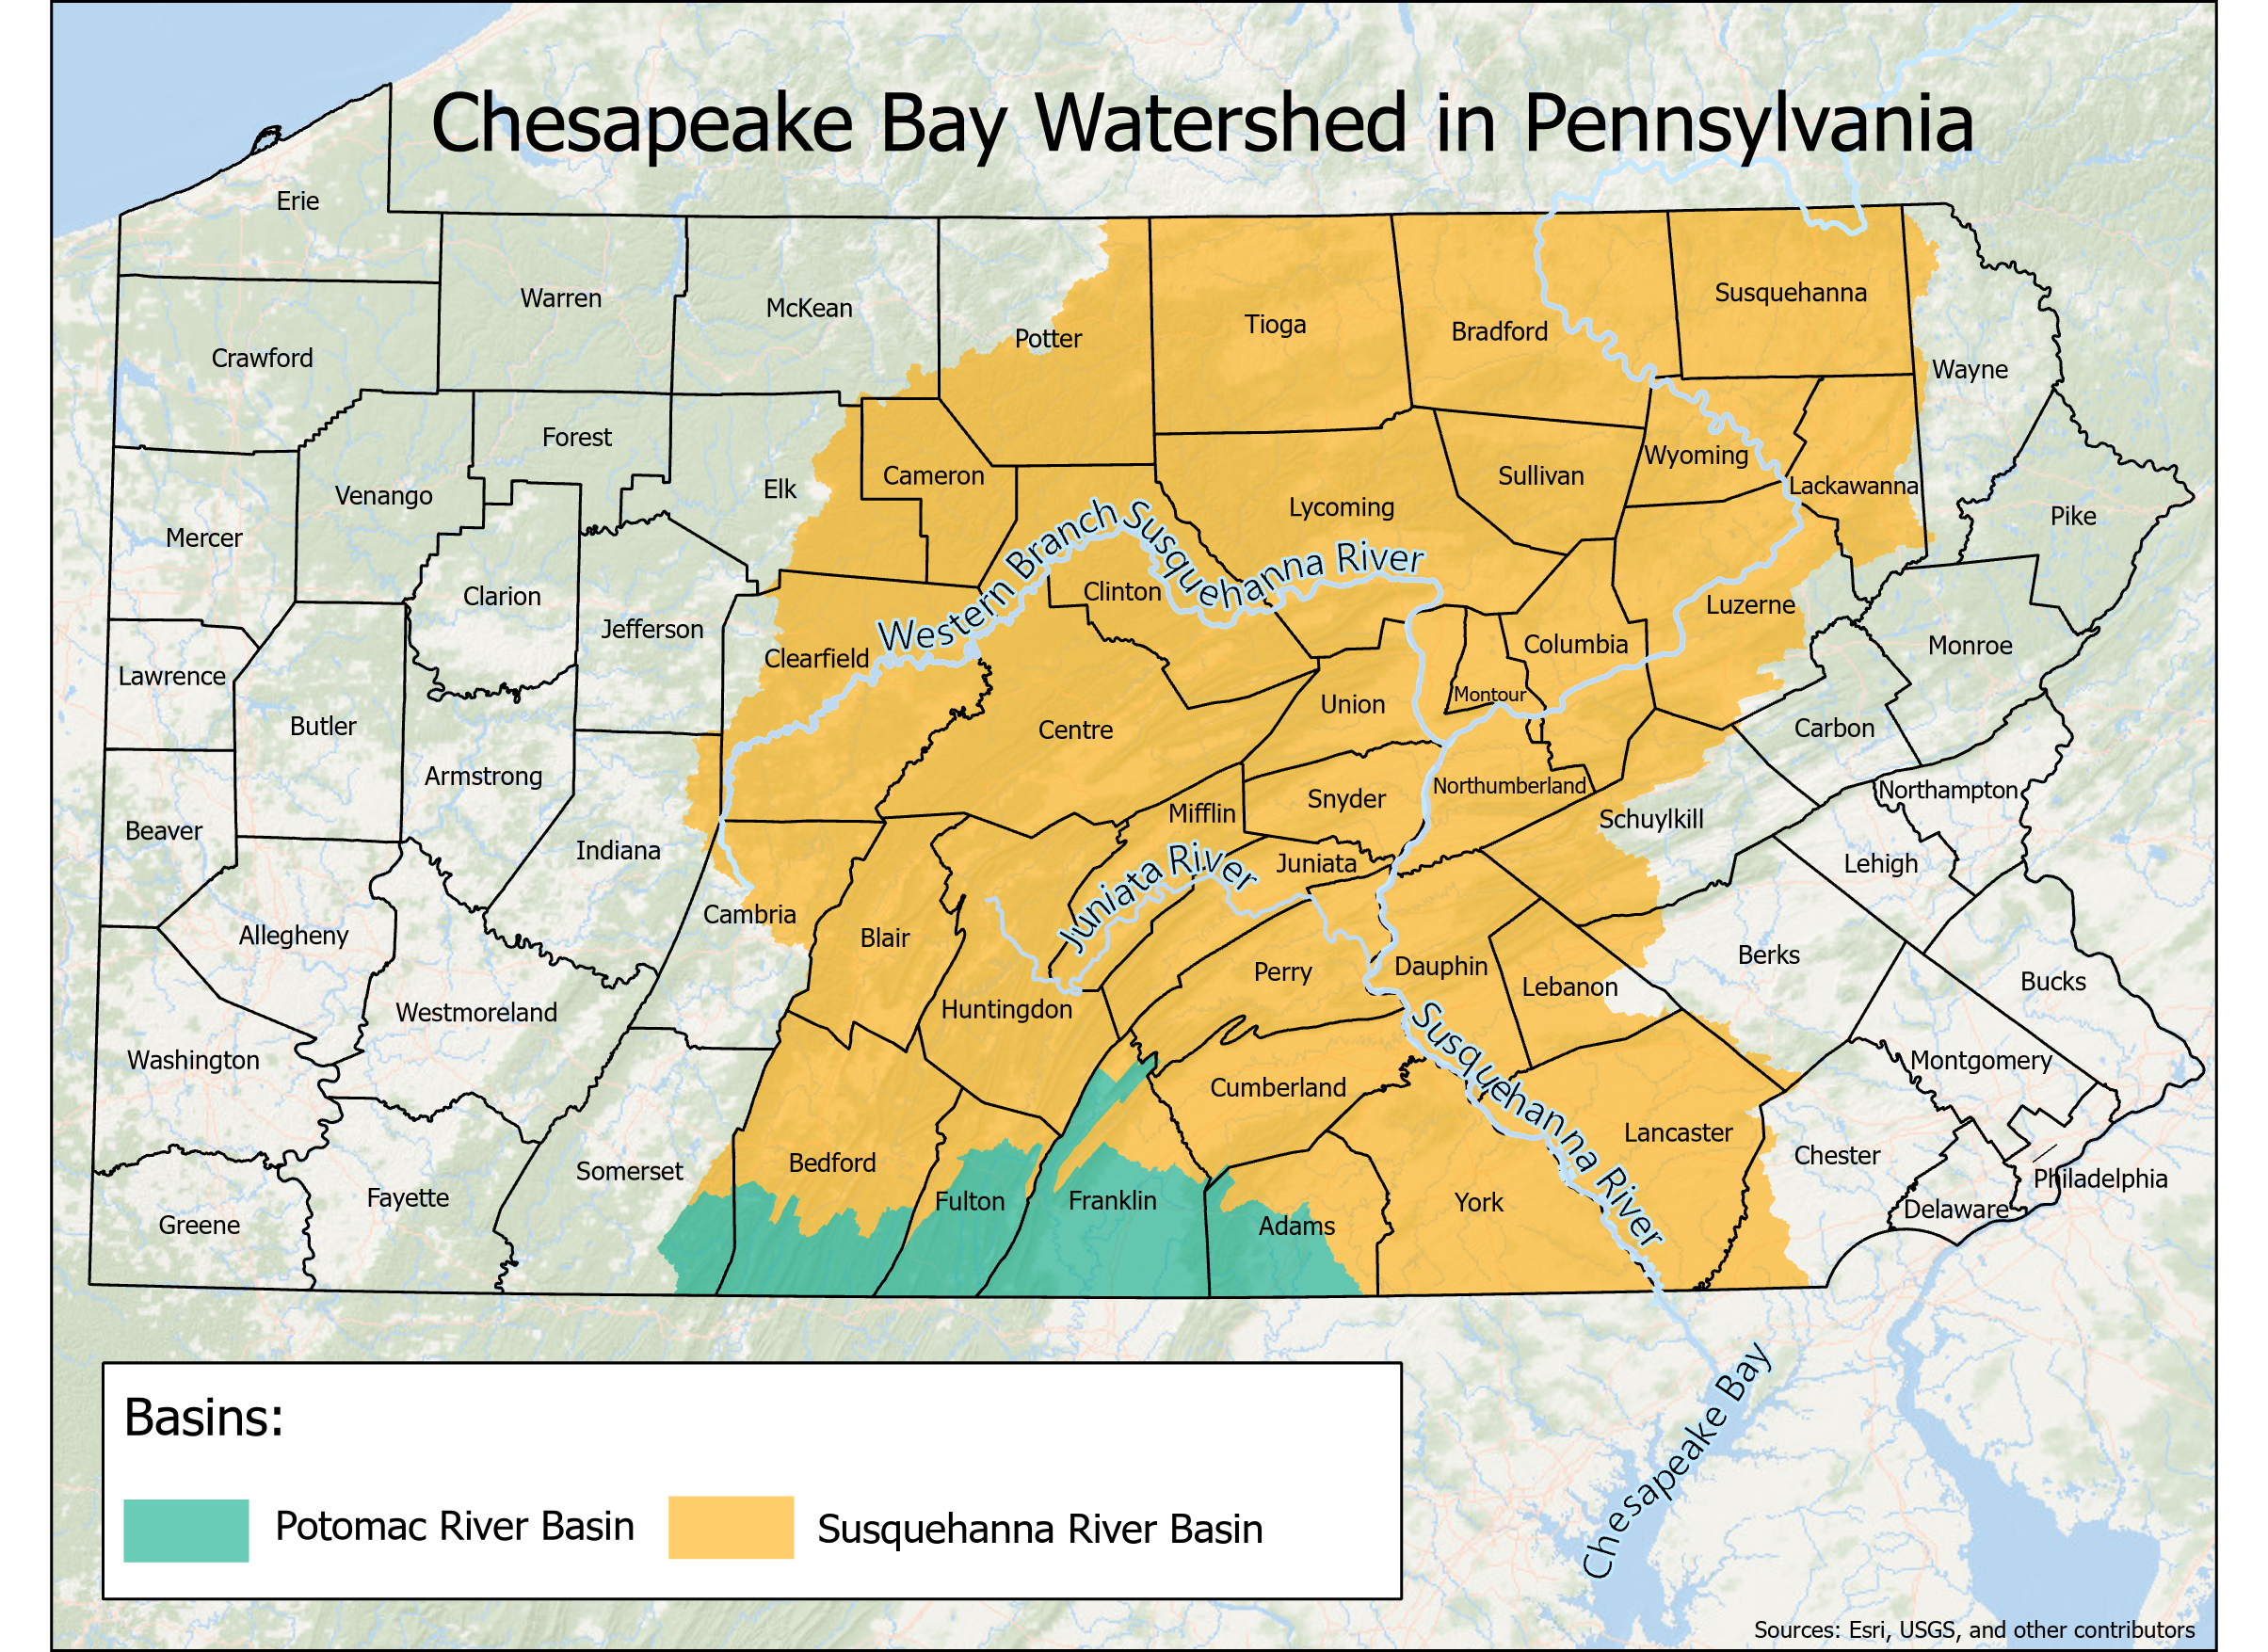 Chesapeake Bay Watershed in PA